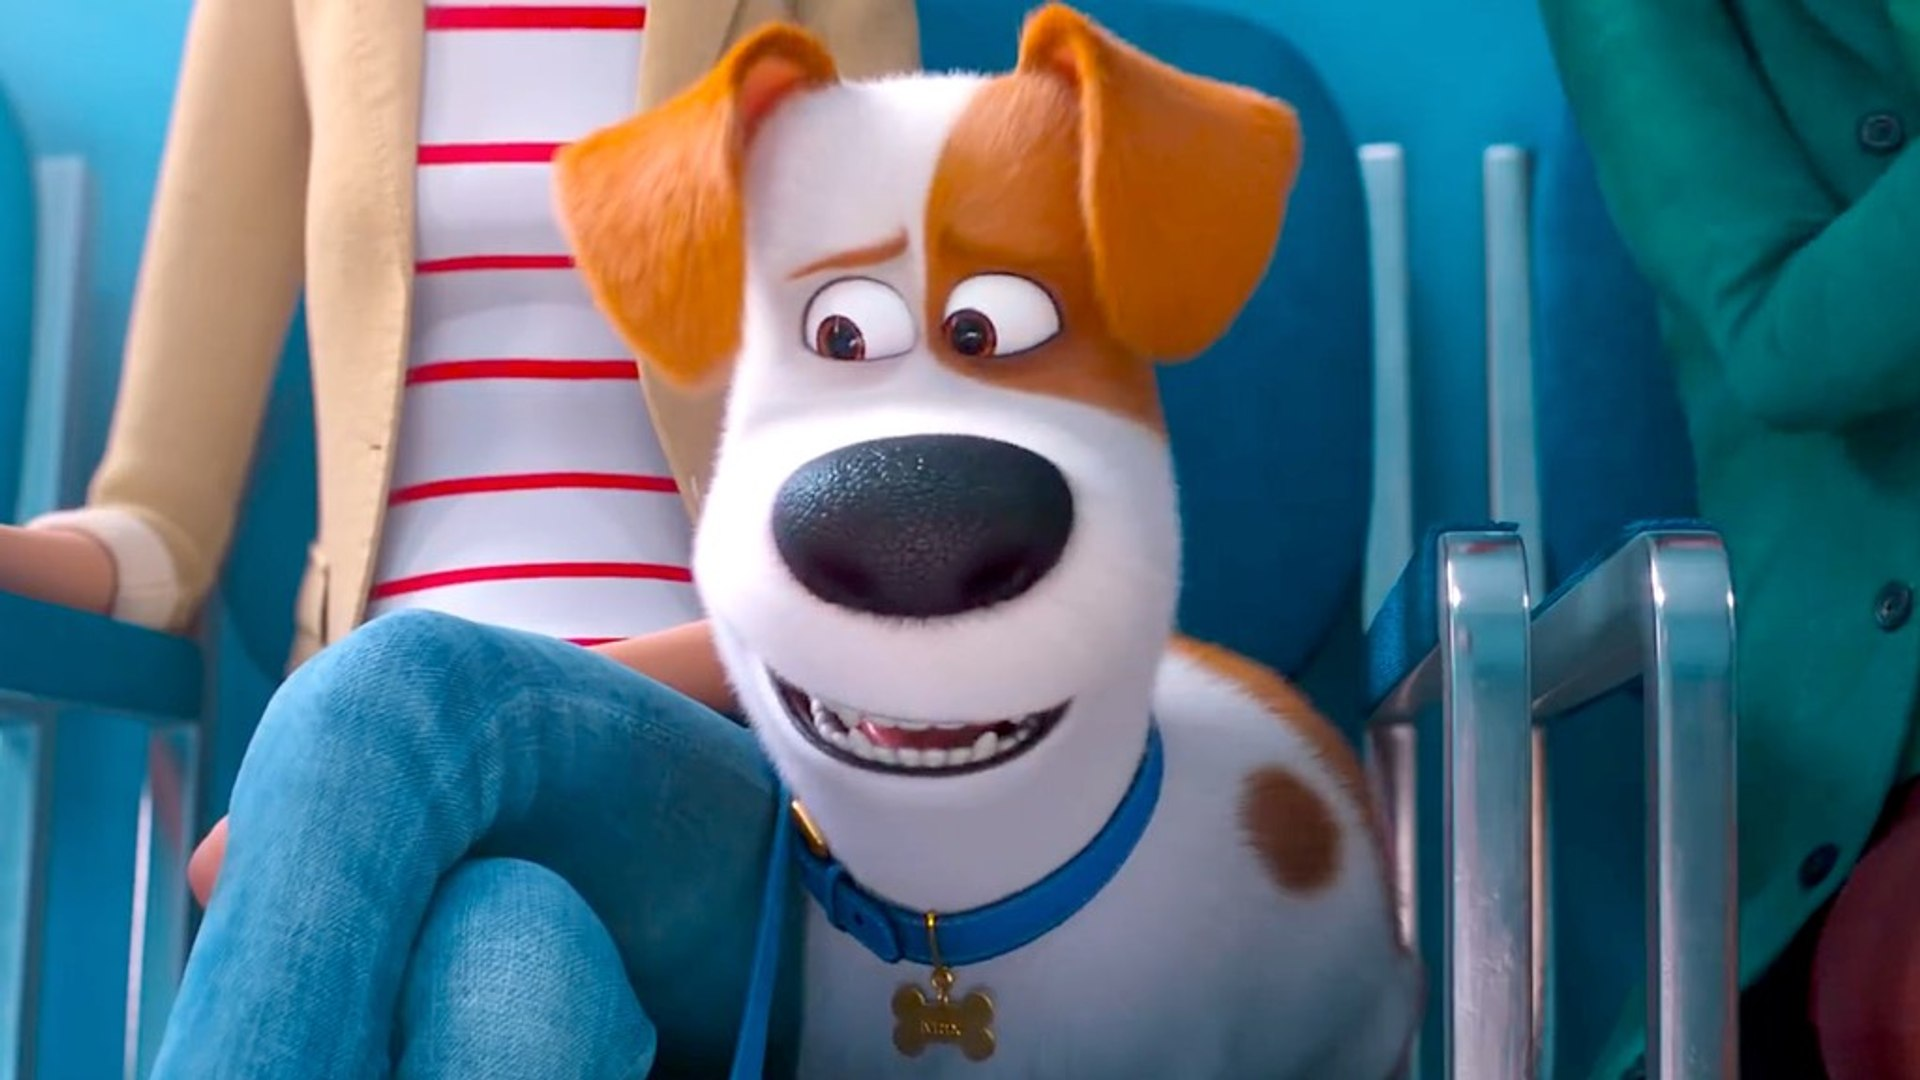 The Secret Life Of Pets 2 - The Max Trailer